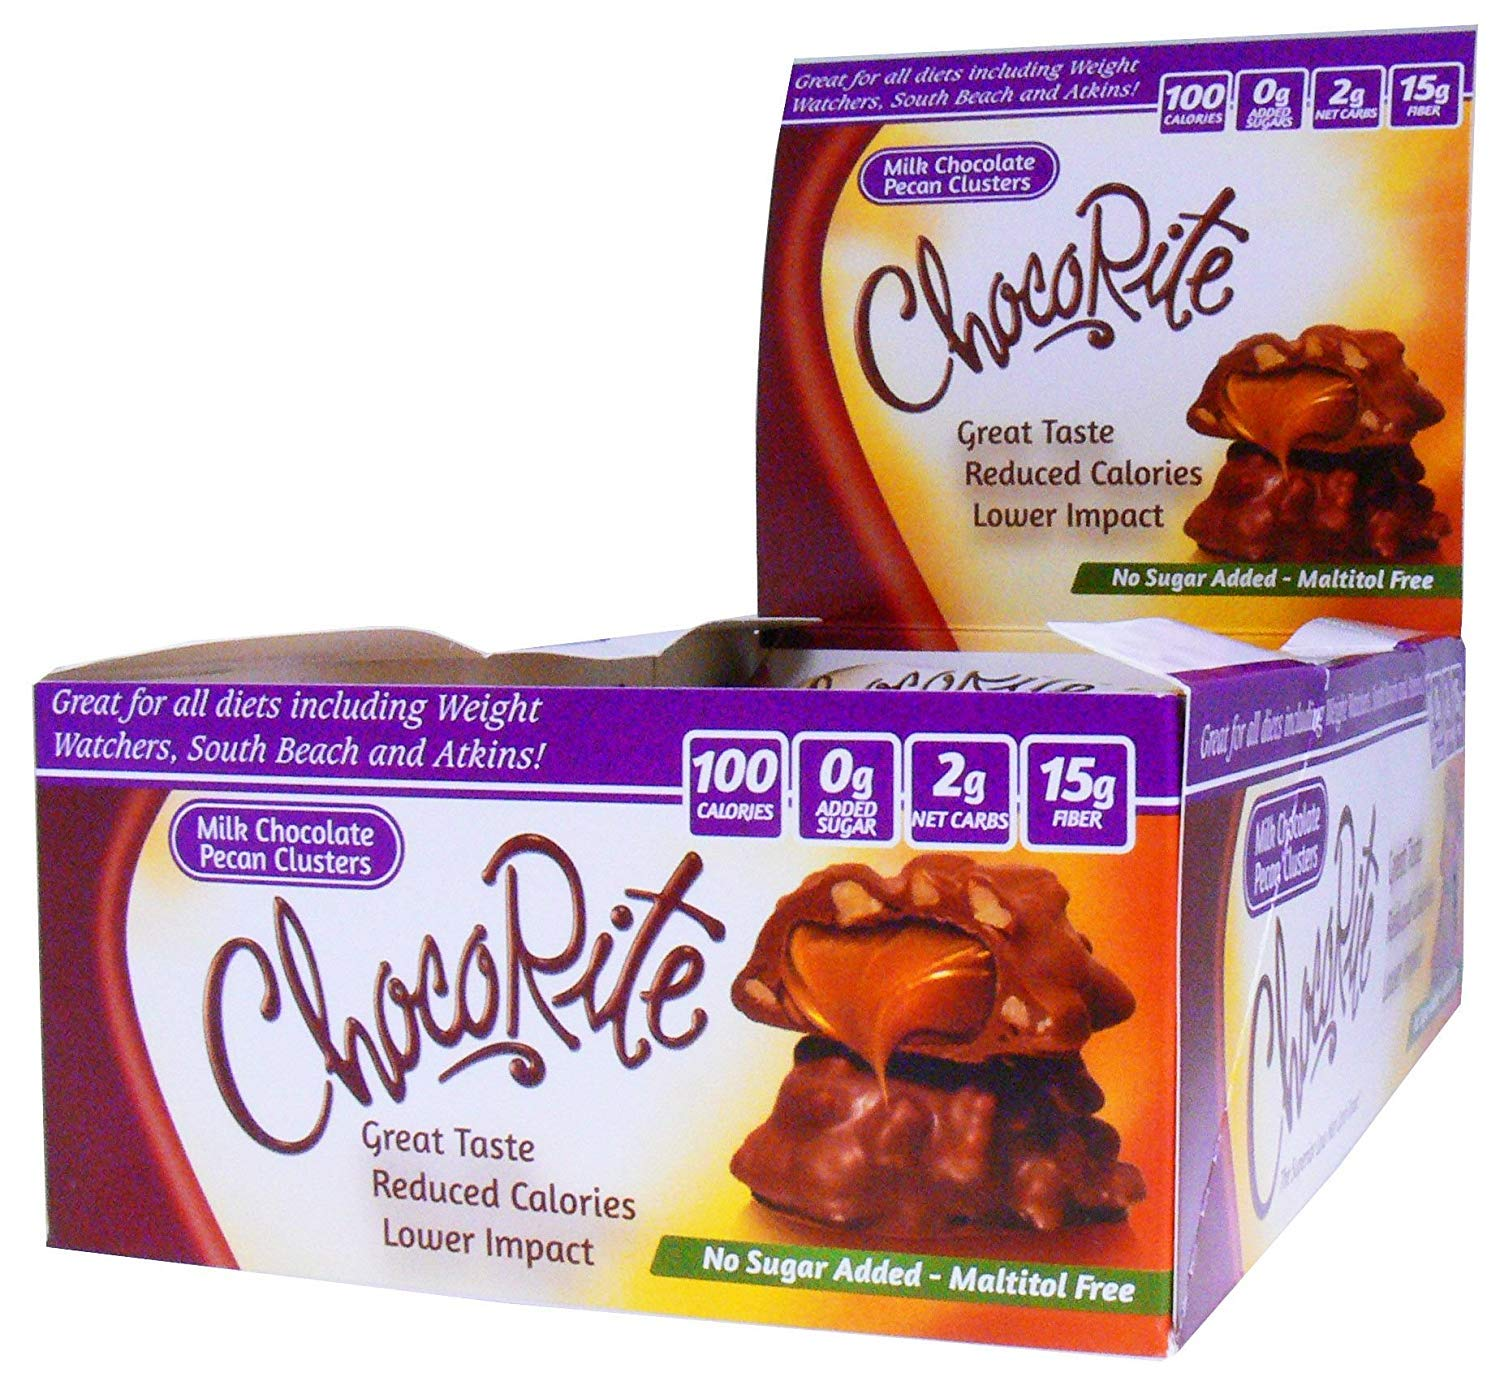 ChocoRite ChocoRite Pecan Cluster, 18 Ounce (3 Pack) by ChocoRite